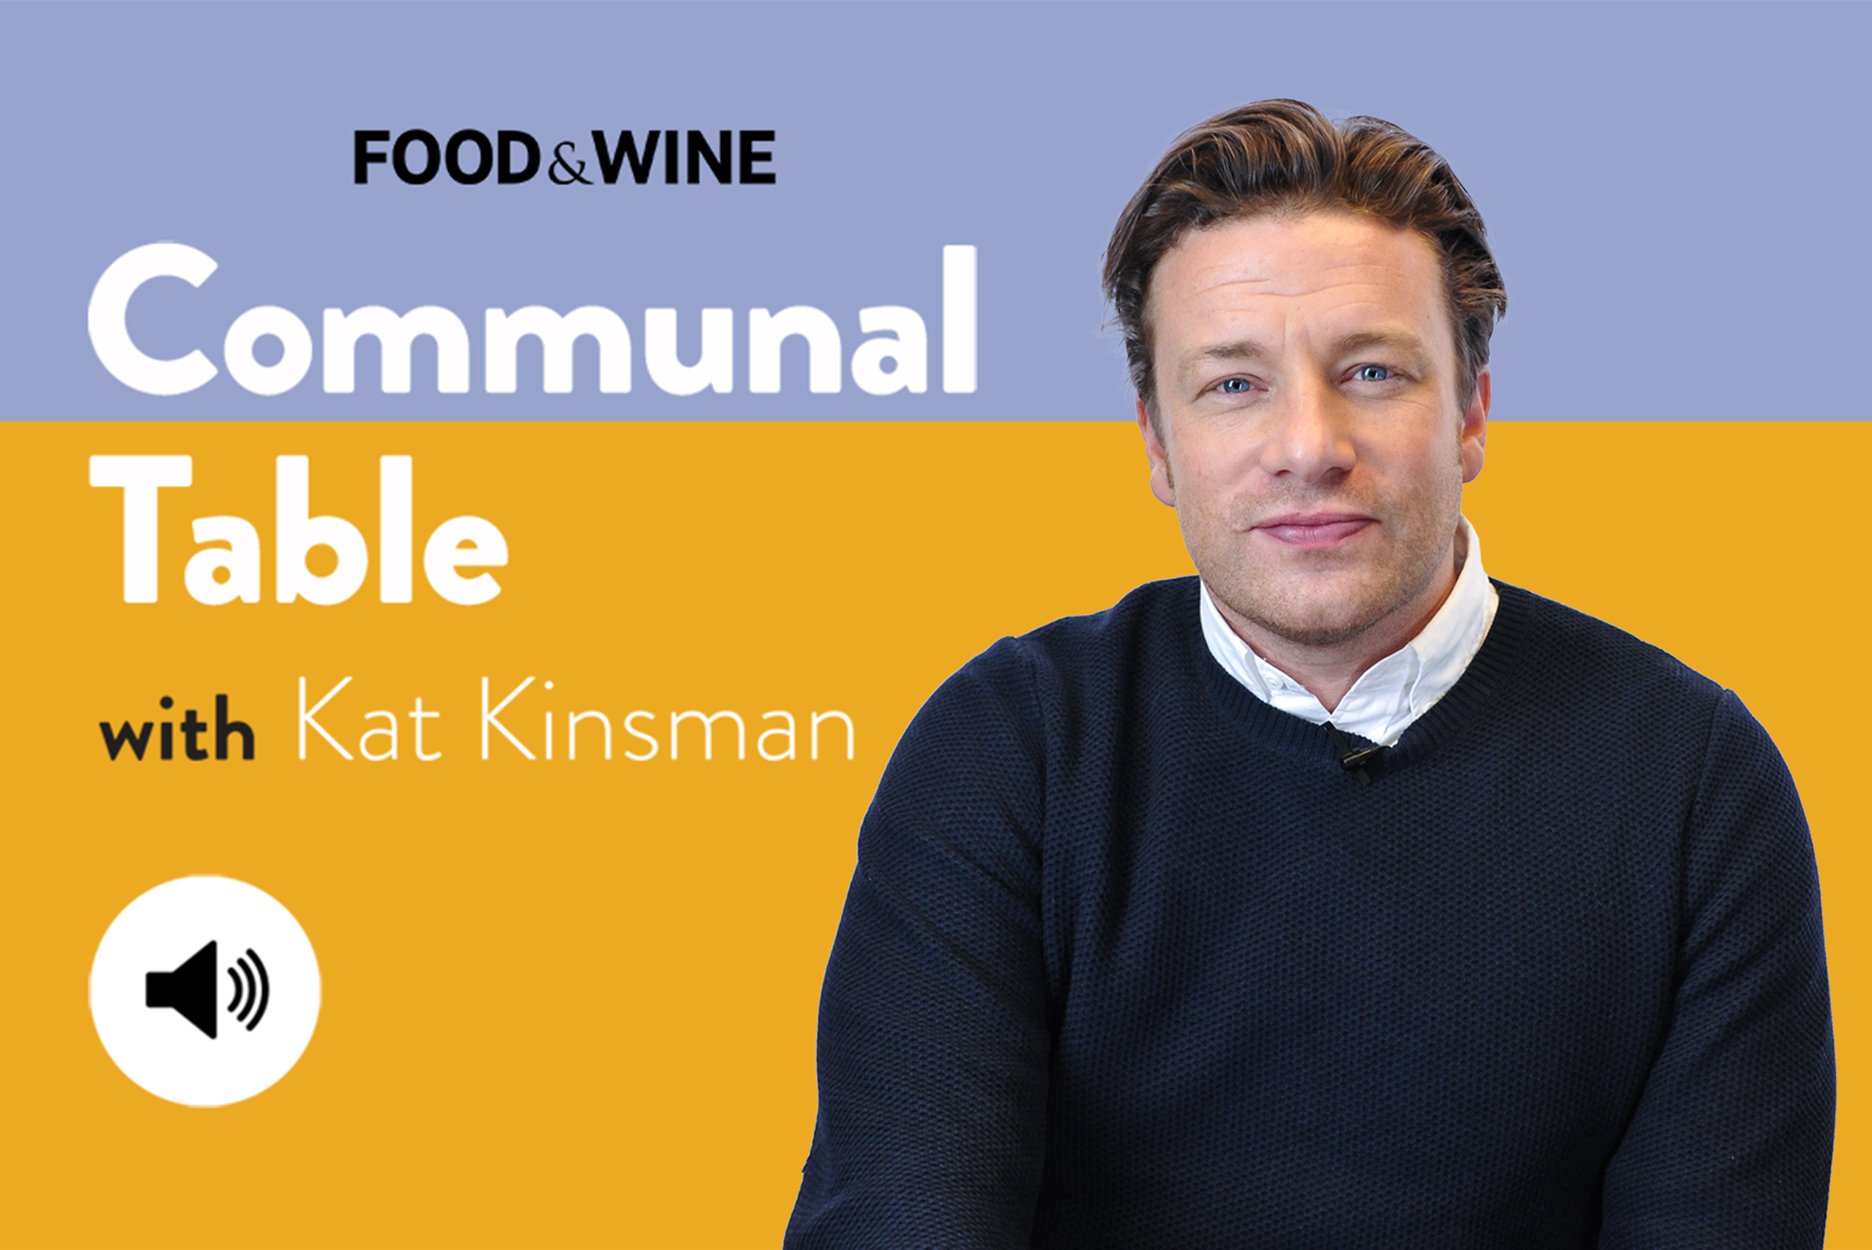 Communal Table with Kat Kinsman featuring Jamie Oliver